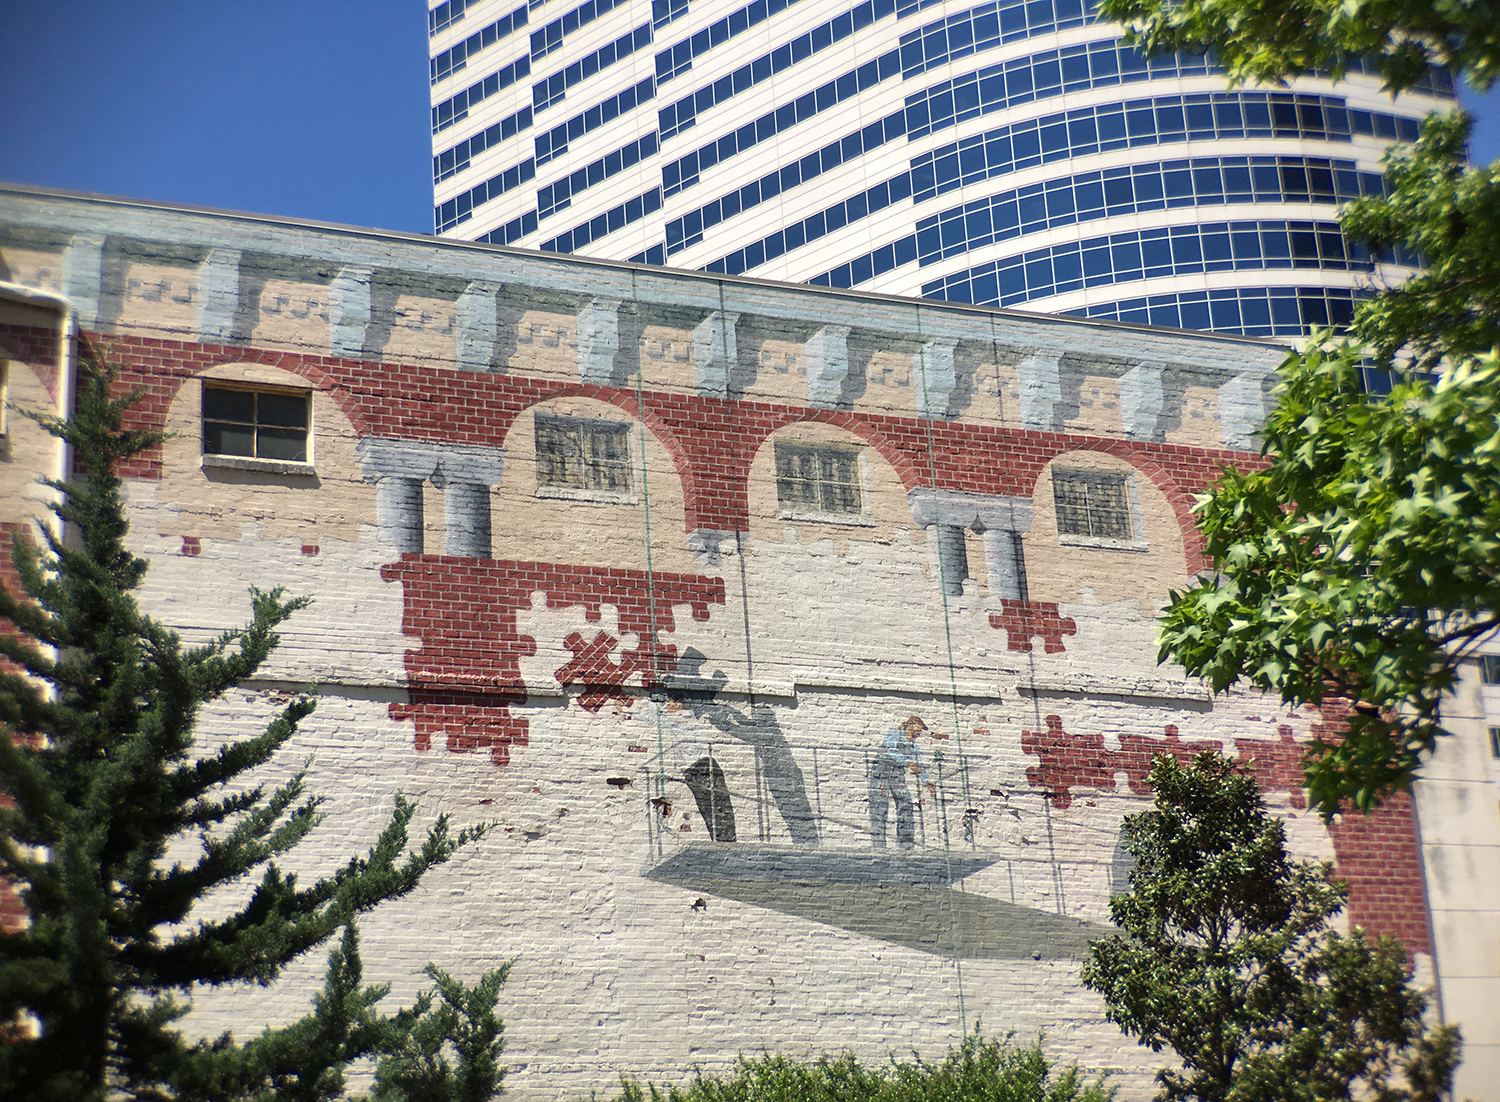 Across from the downtown public library, a trompe l'oeil mural. Those always grab my attention.